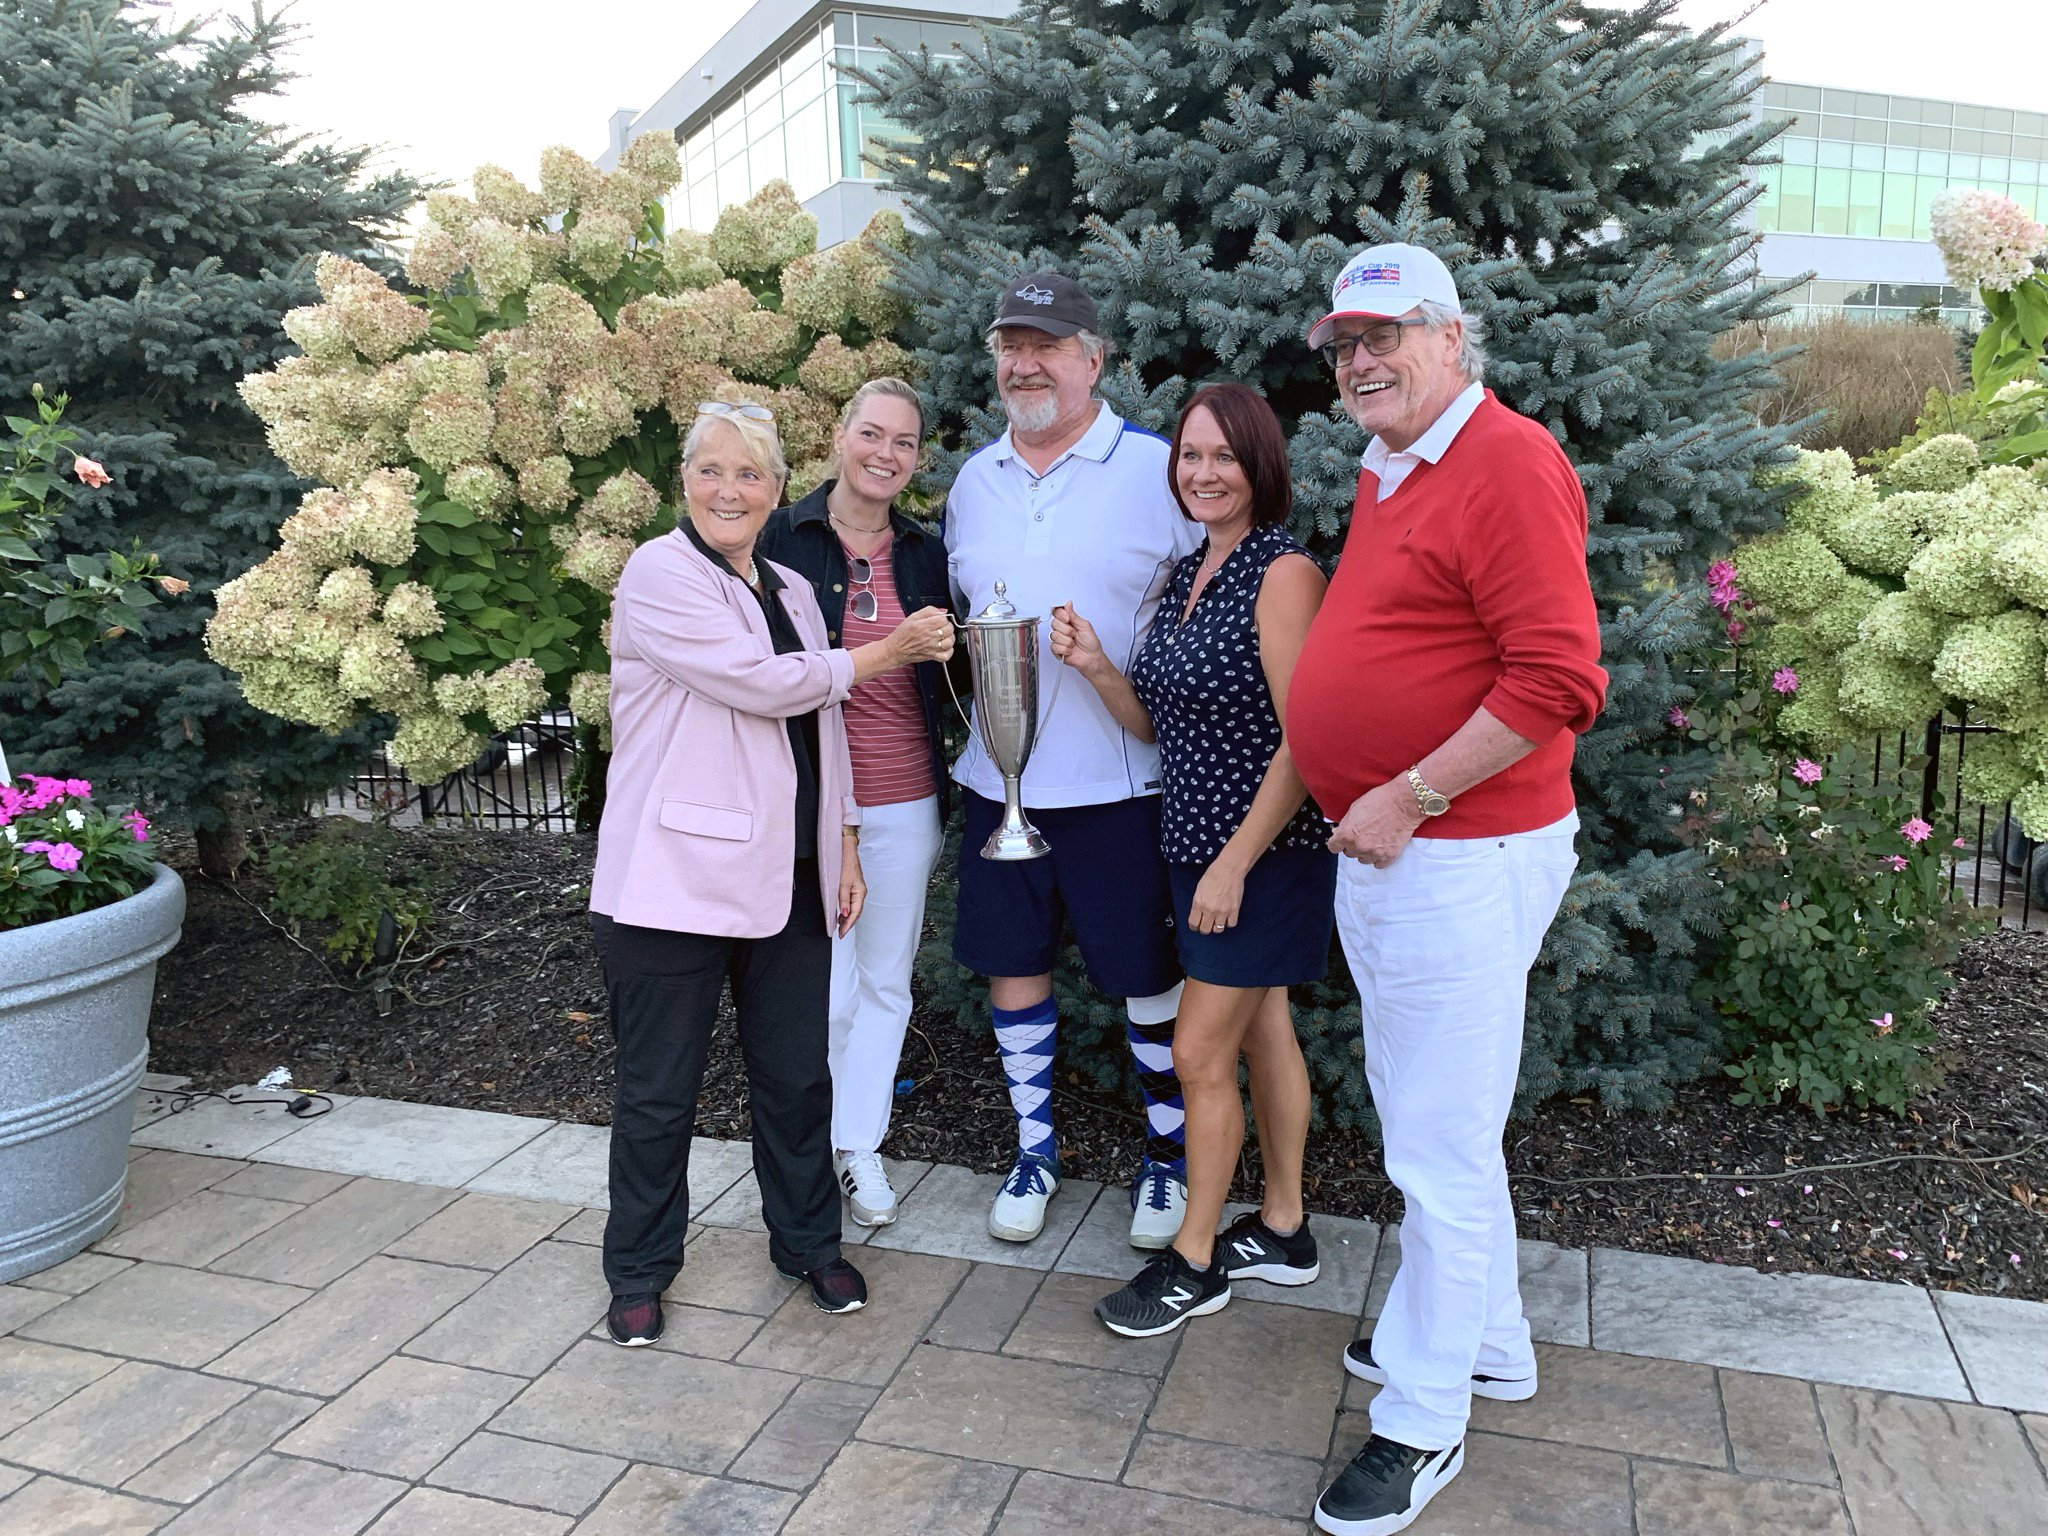 The 11th Annual Nordic Consular Cup Golf Tournament